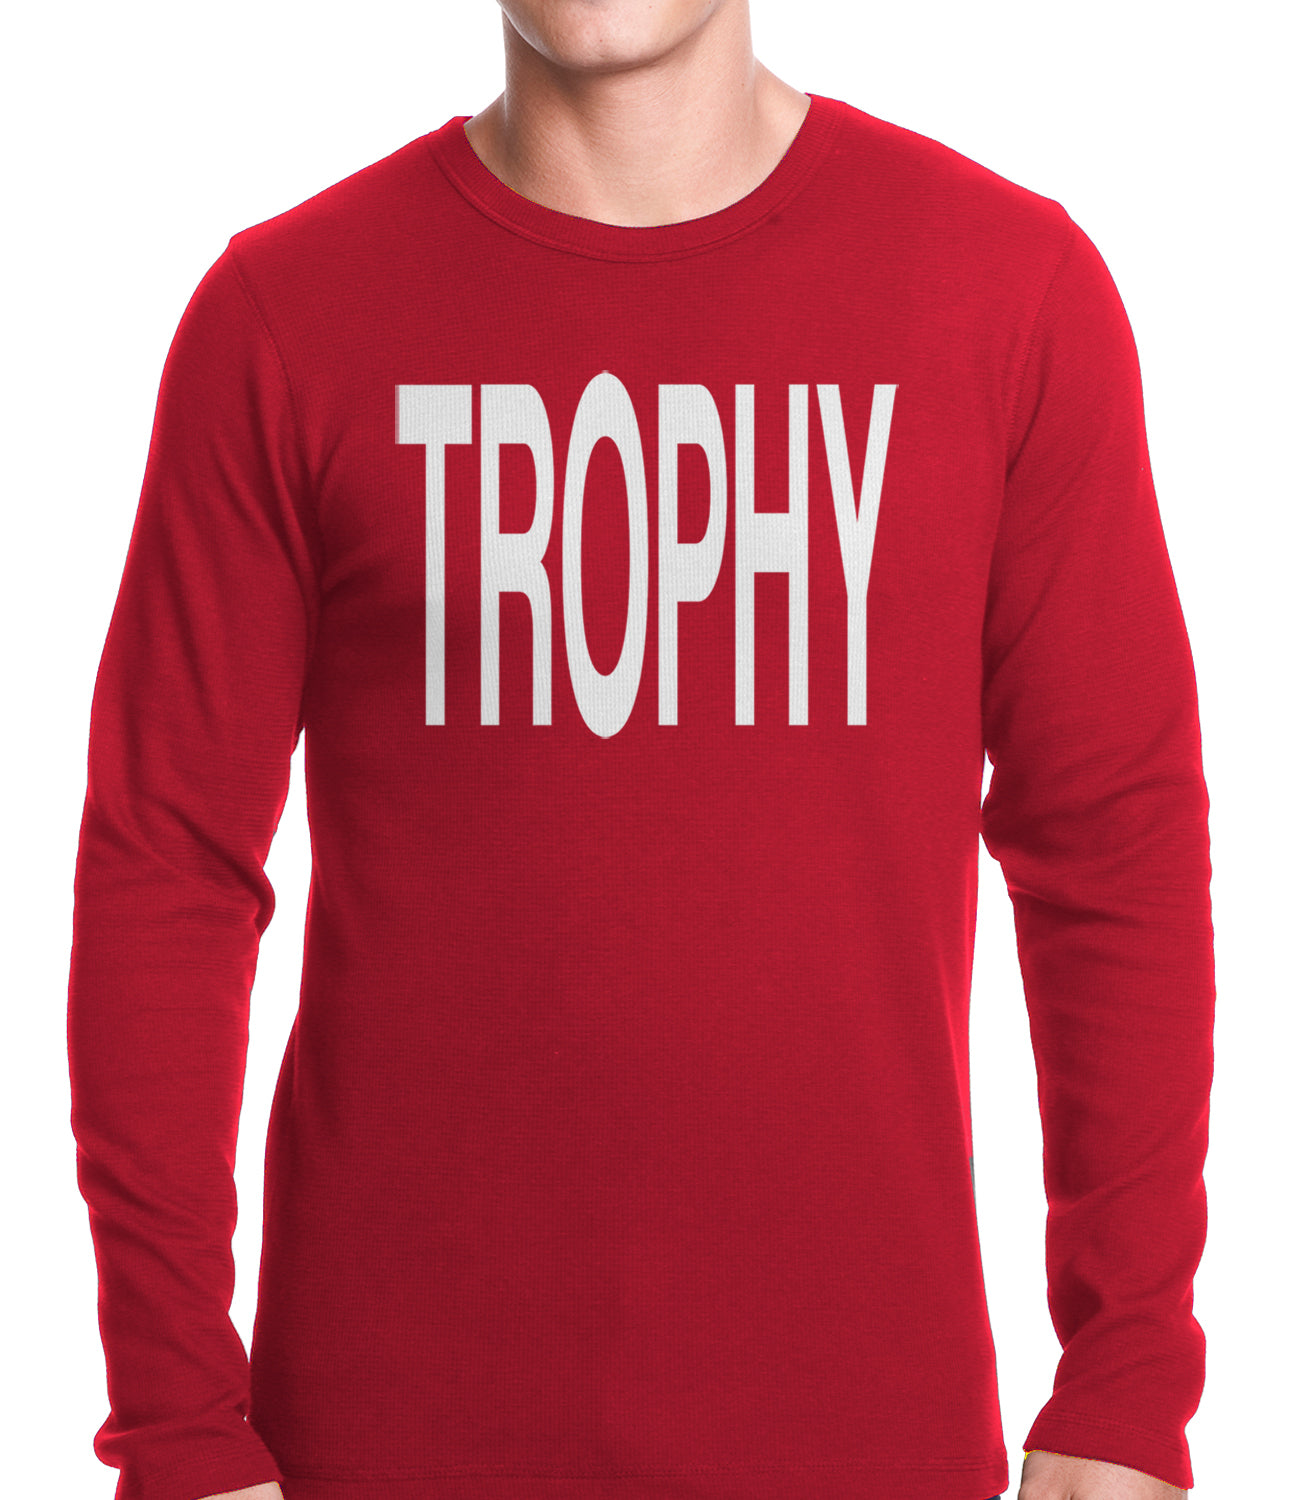 Trophy Thermal Shirt